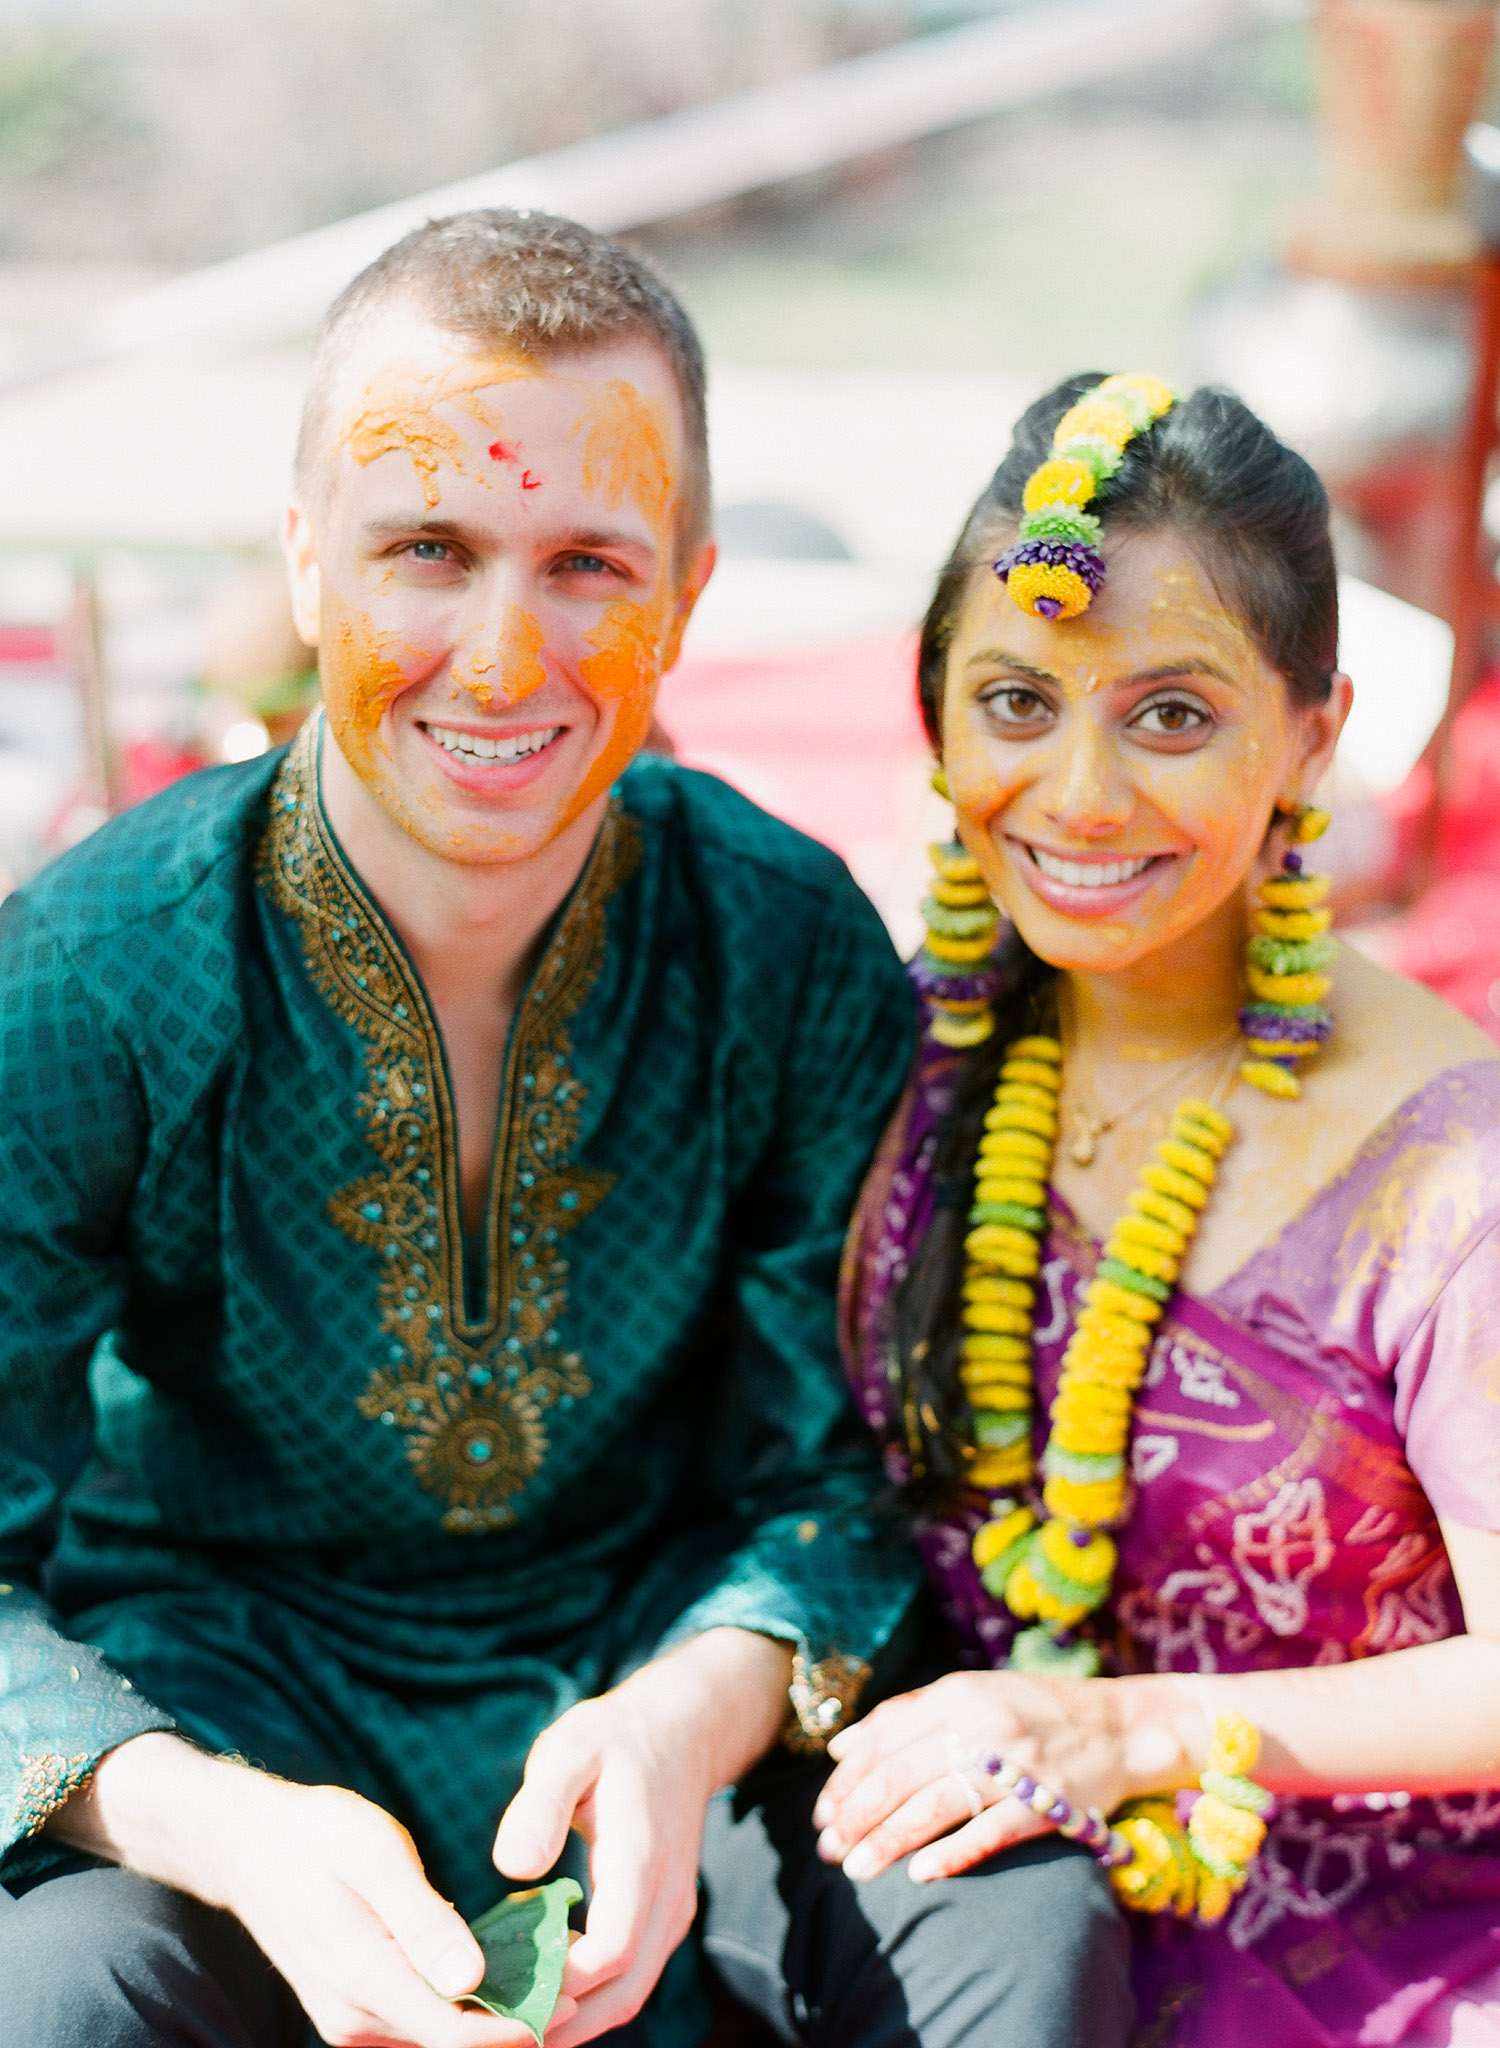 best indian wedding photographer lexia frank photographs this luxury indian wedding in florida on film because she is a film photogapher who shoots indian weddings for brides that love maharani weddings, south asian bride magazine and manish malhotra